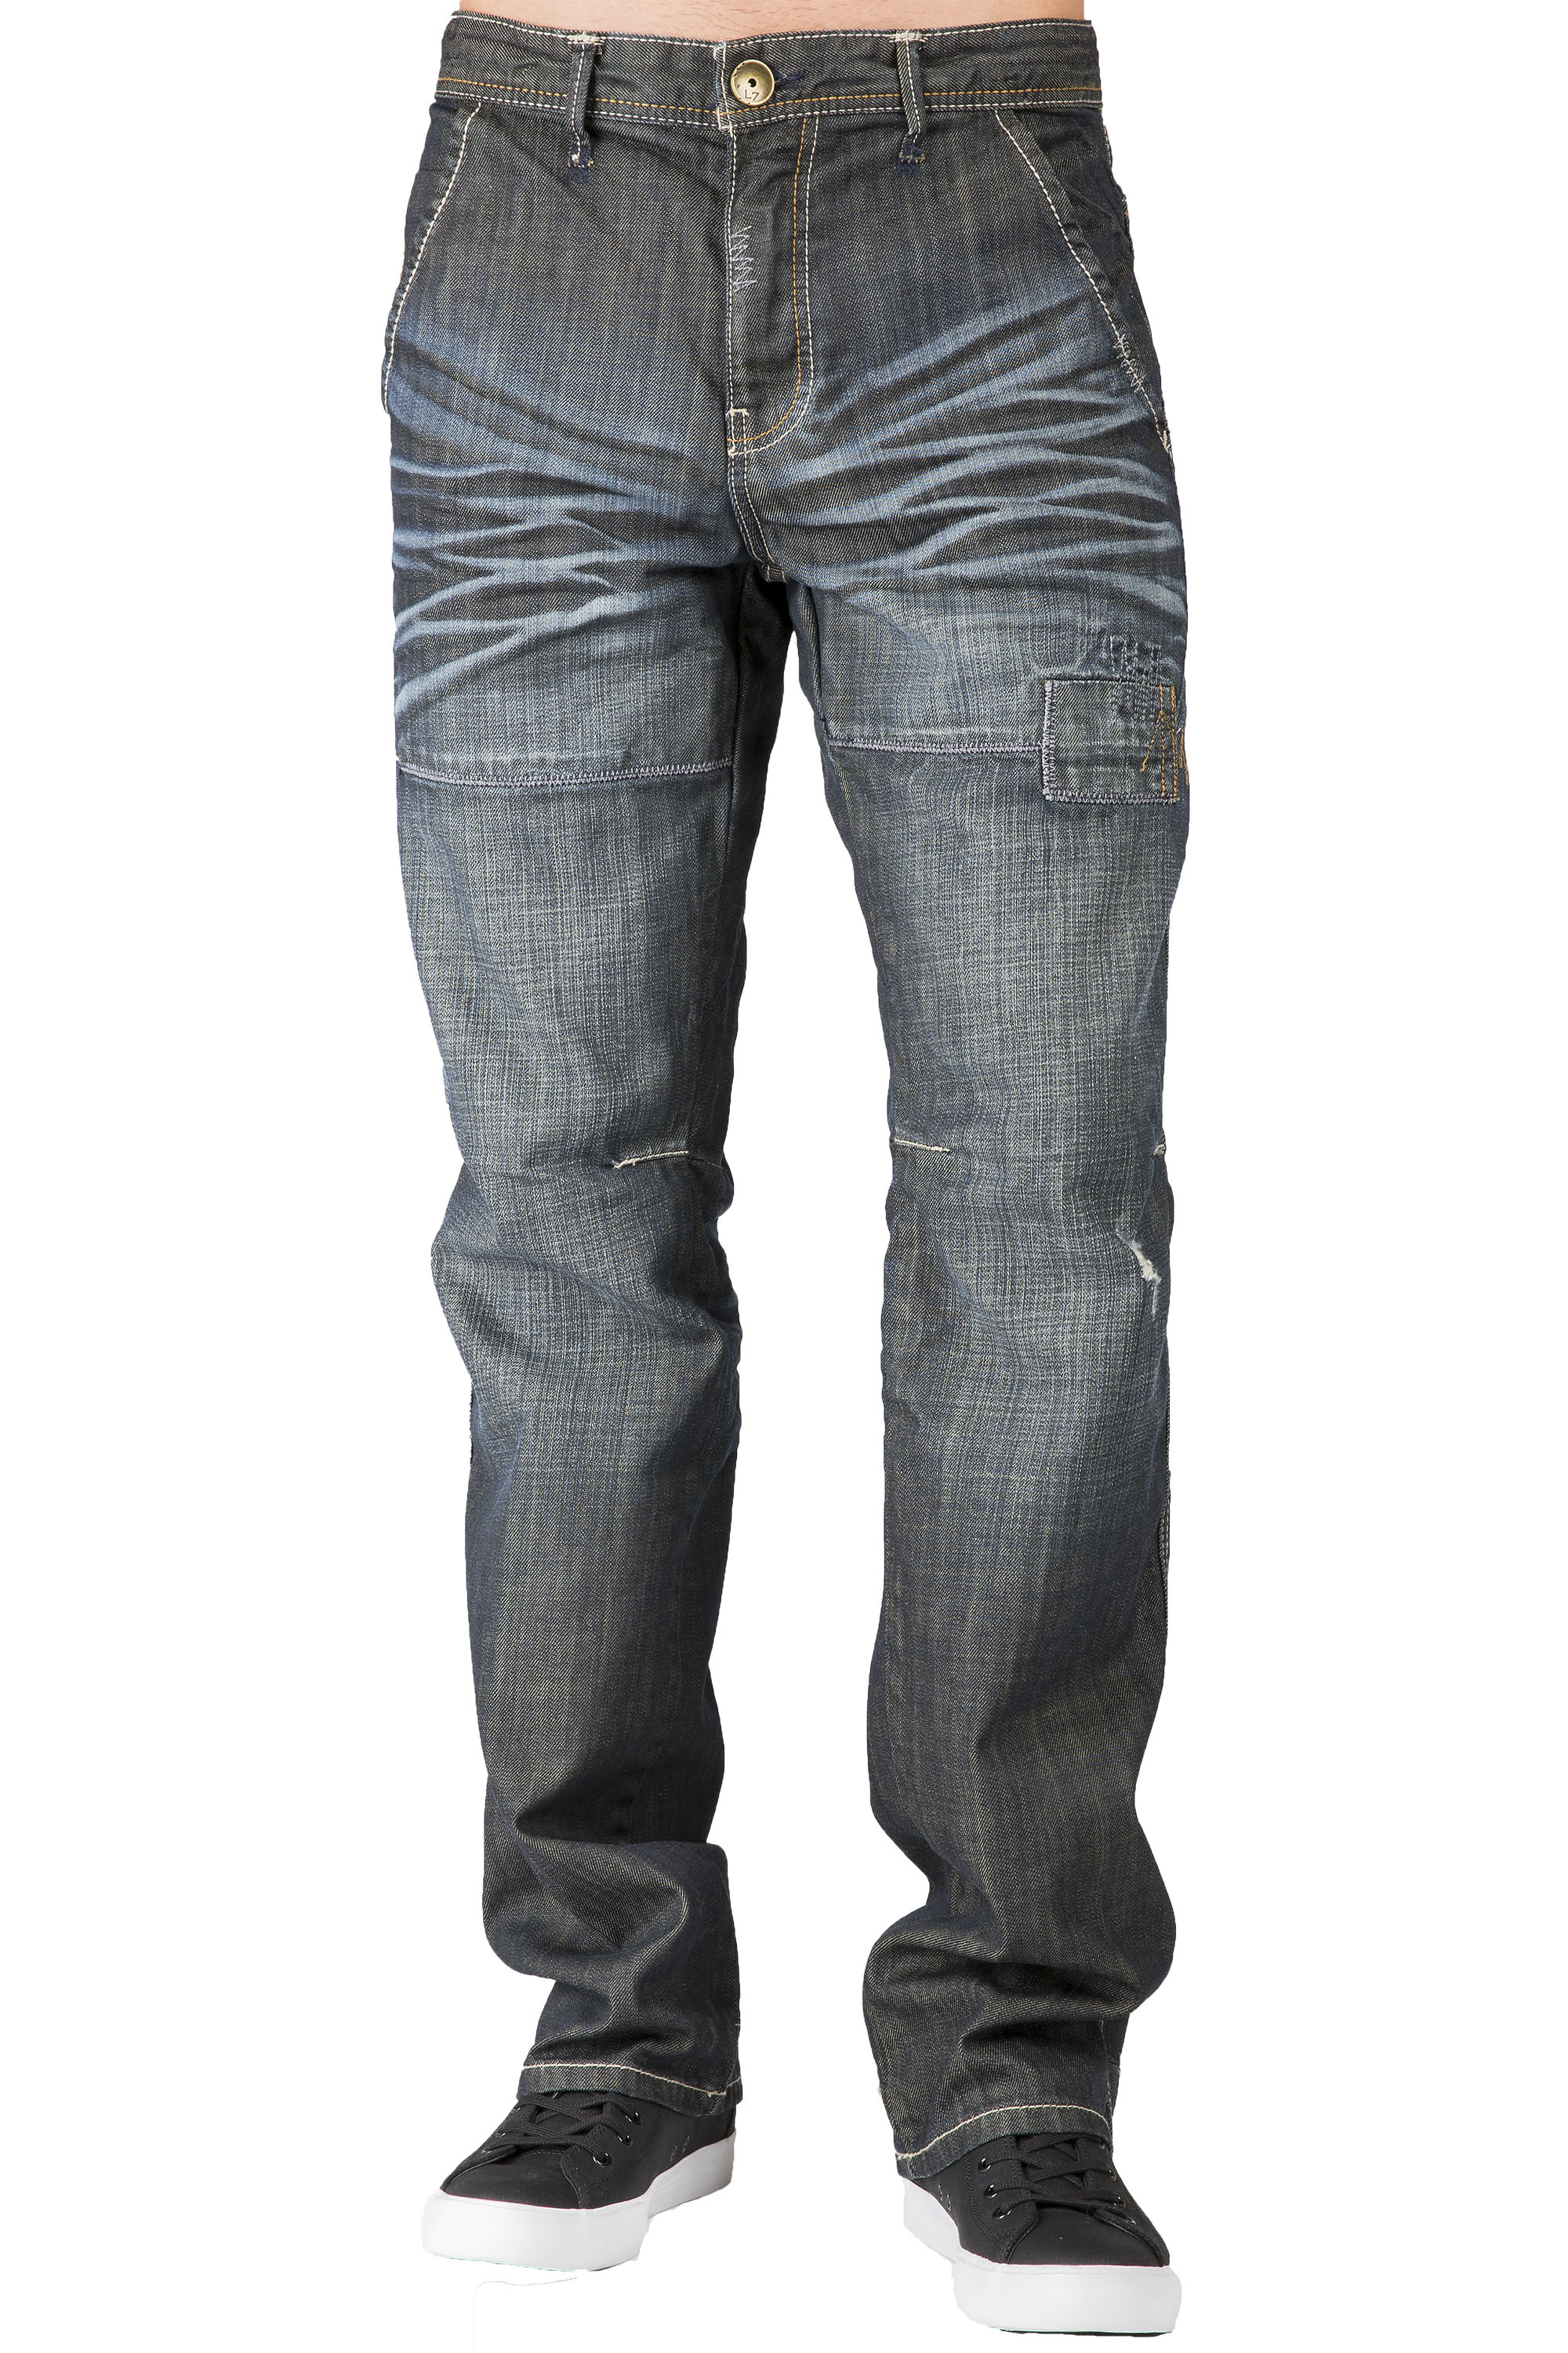 15b613c7 mens relaxed dark stoned wash midrise relaxed fit straight leg jeans